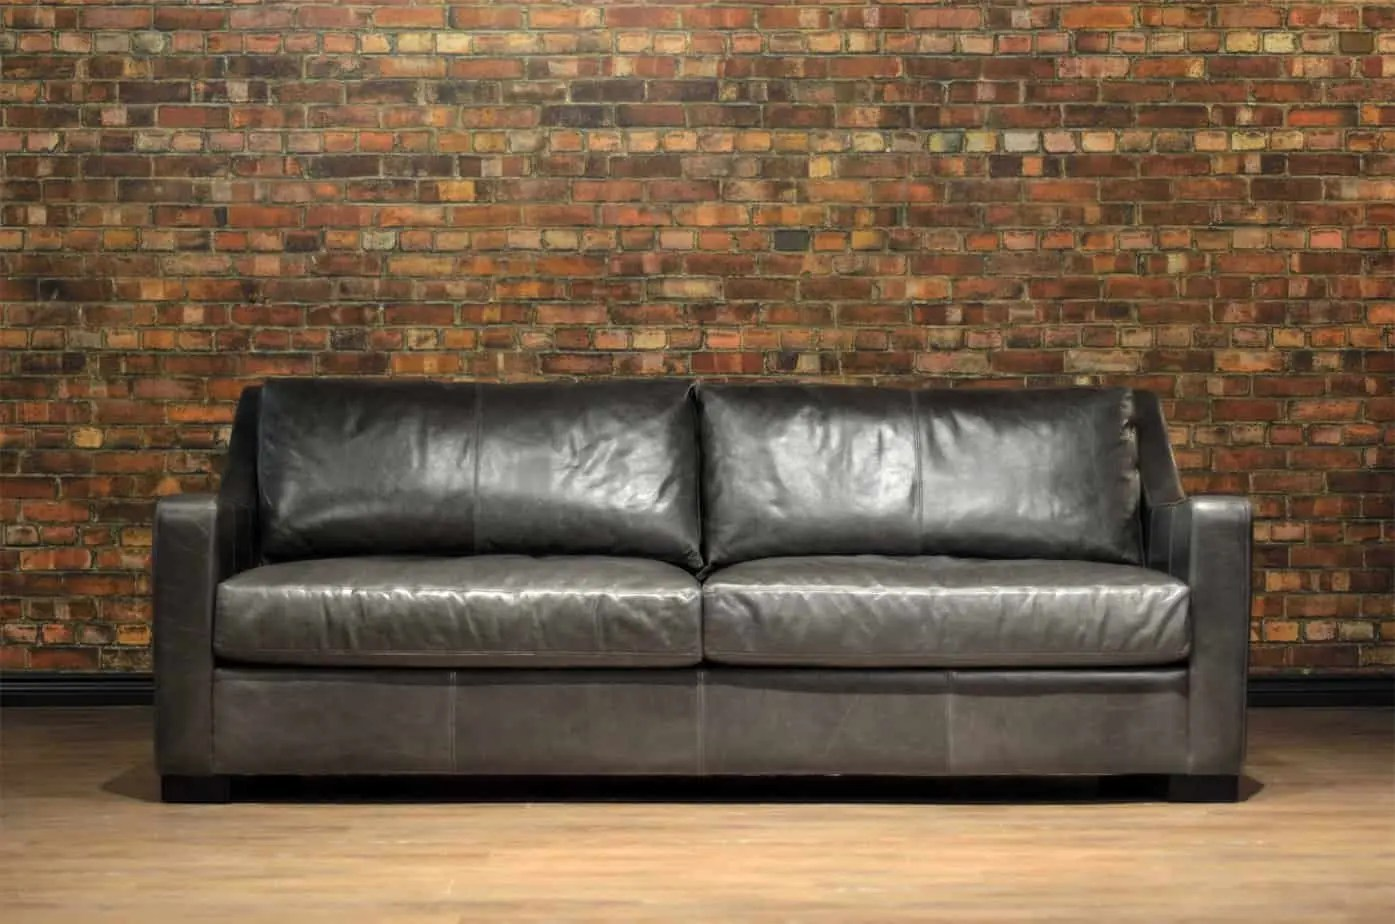 Furniture Outlet Canada Leather Sofa And Sectional Choose Color Leather And Size